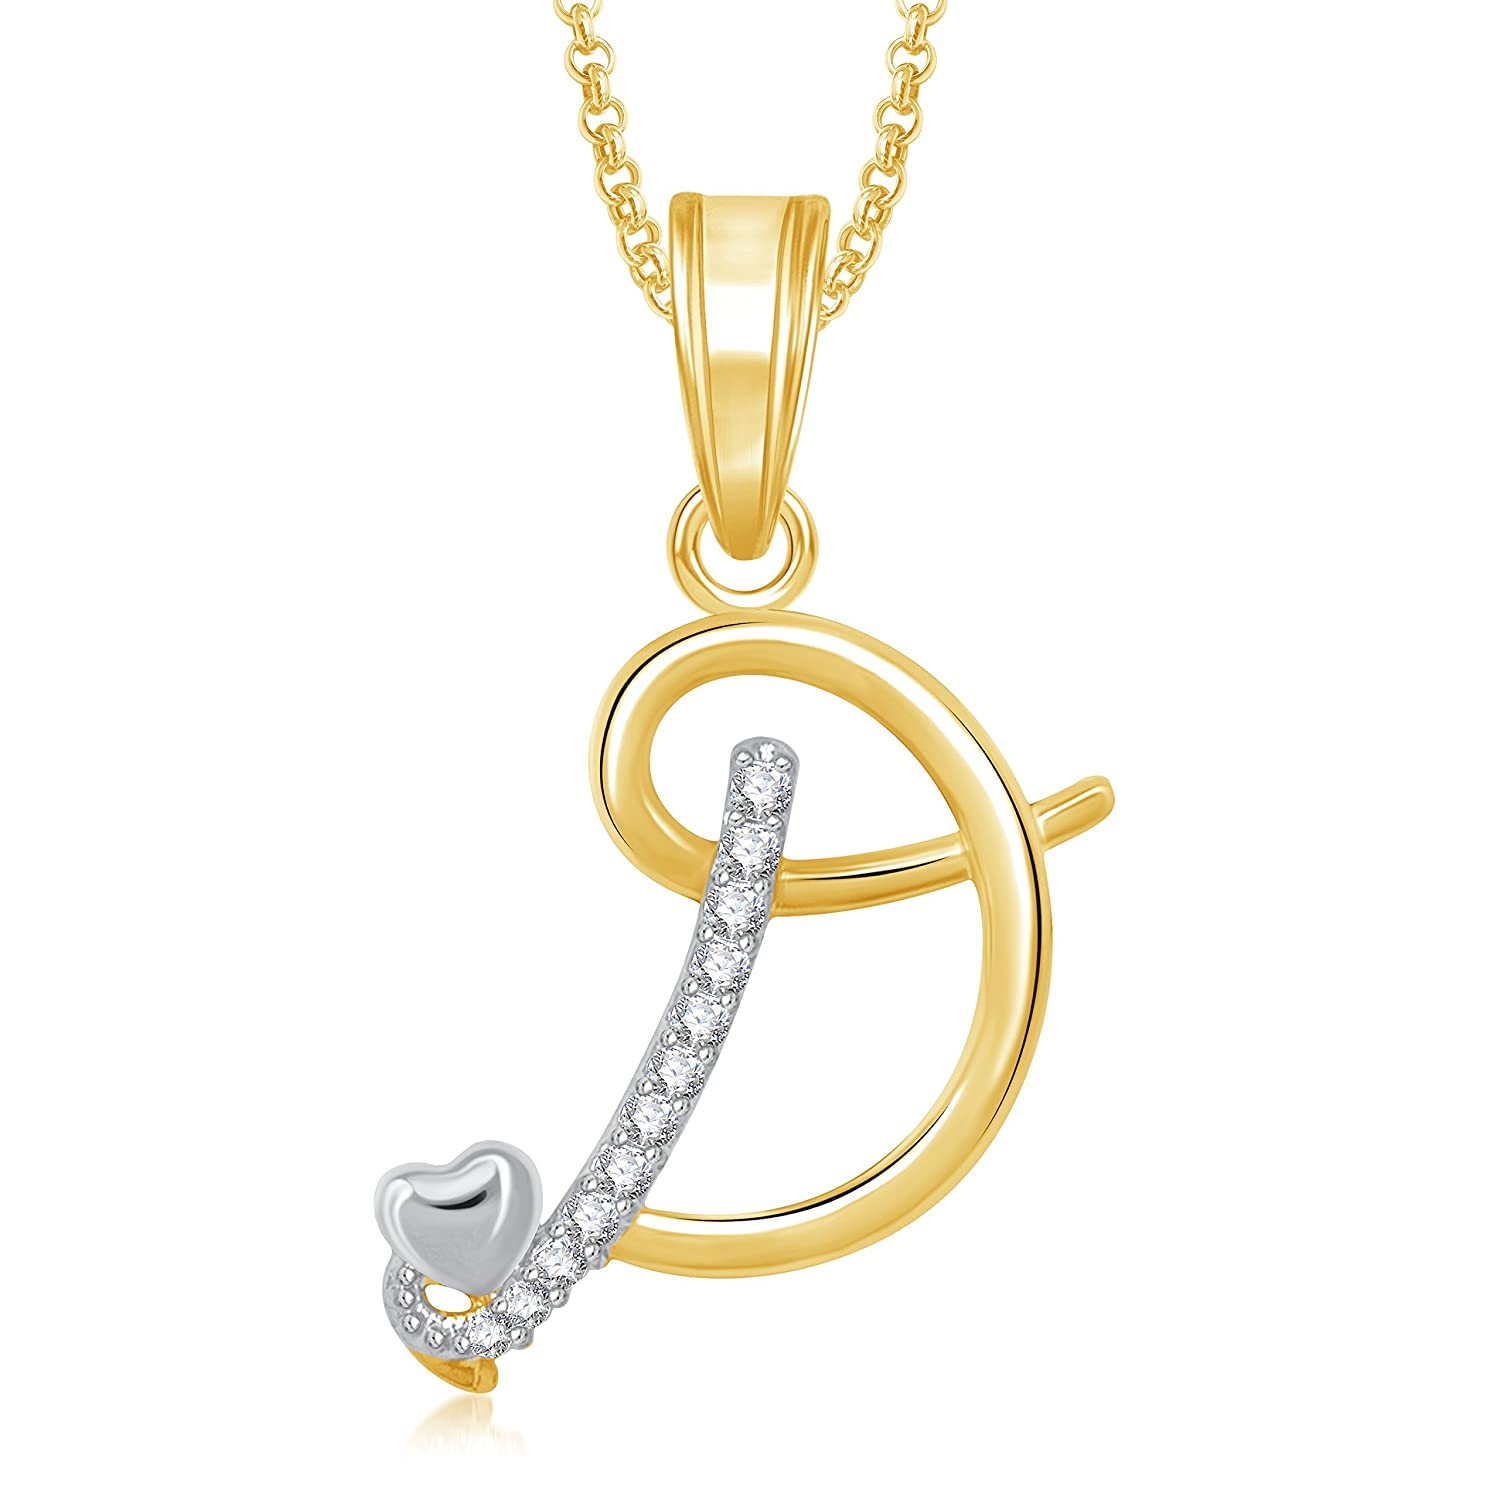 Buy meenaz gold plated american diamond d letter pendant pendant buy meenaz gold plated american diamond d letter pendant pendant for unisex online at low prices in india amazon jewellery store amazon mozeypictures Images